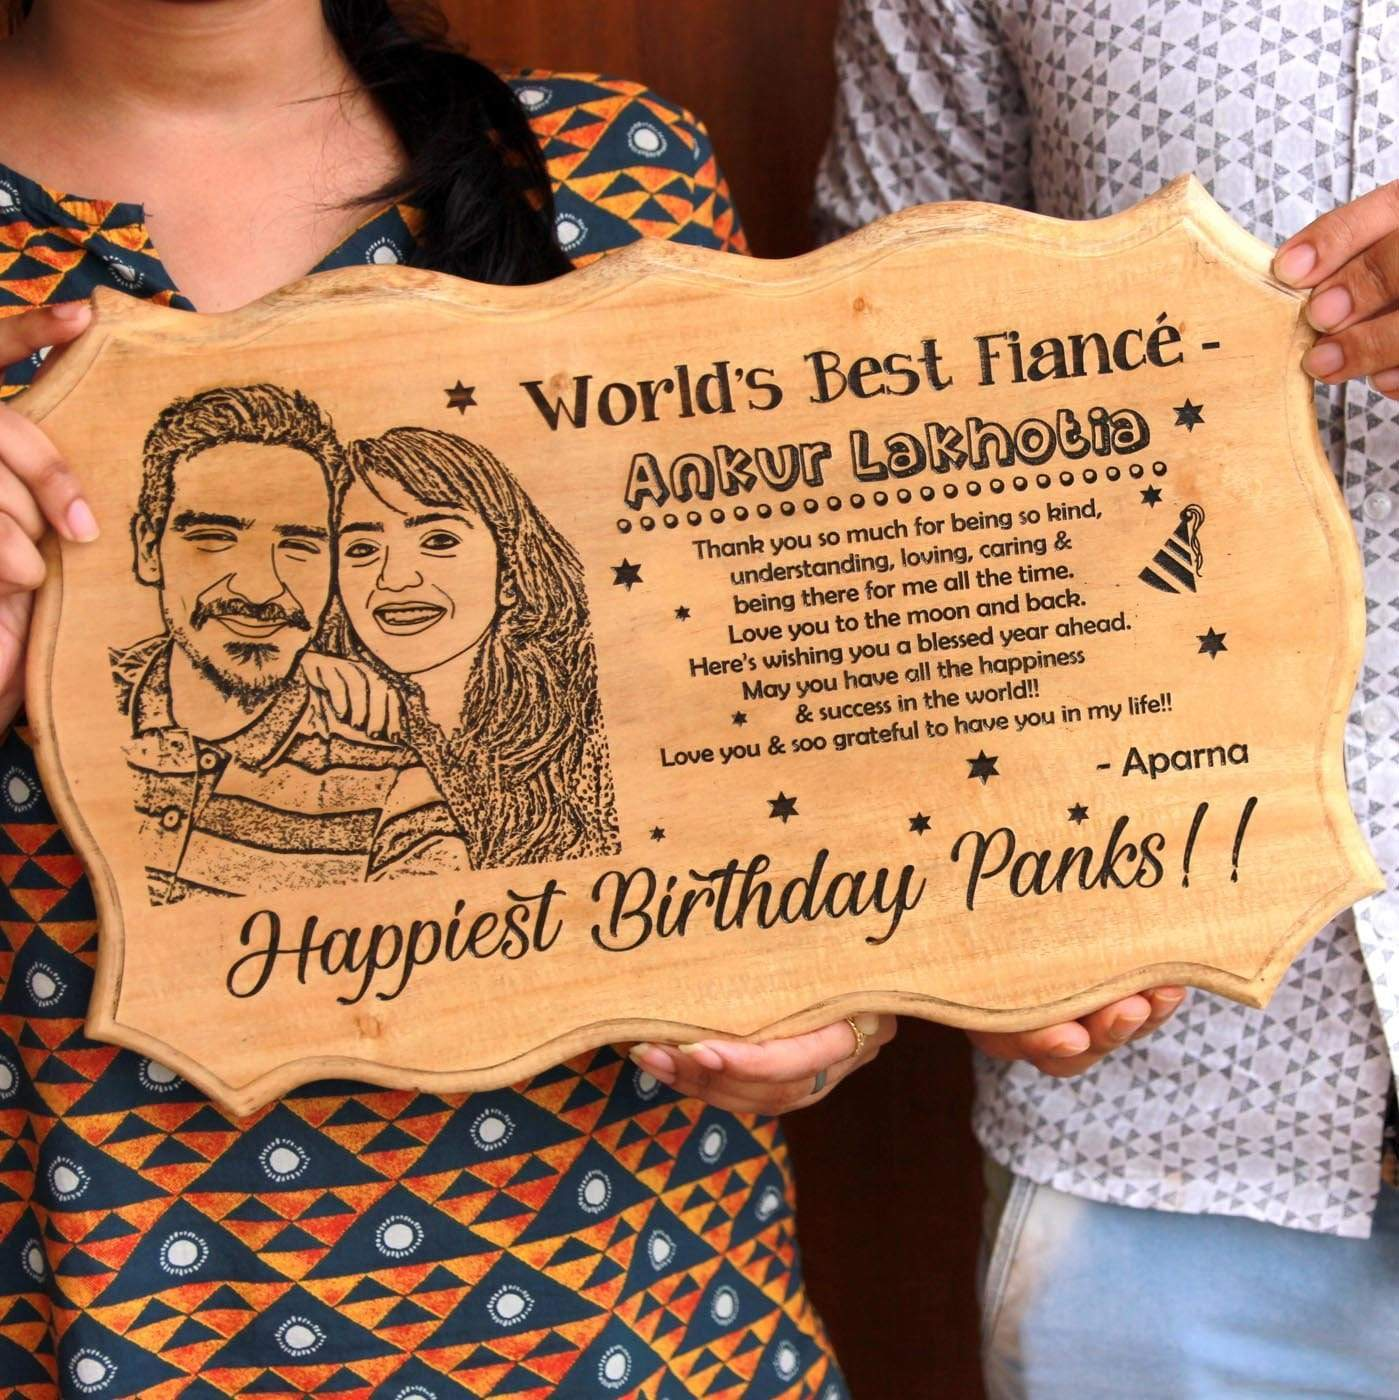 World's Best Fiancé Award Certificate. Engrave Photo On Wood With This Wooden Certificate. These Funny Certificates Are Great Gifts For Fiancé. Looking for unique birthday gifts for fiancé? This certificate of recognition is one of the best personalized gifts for him.